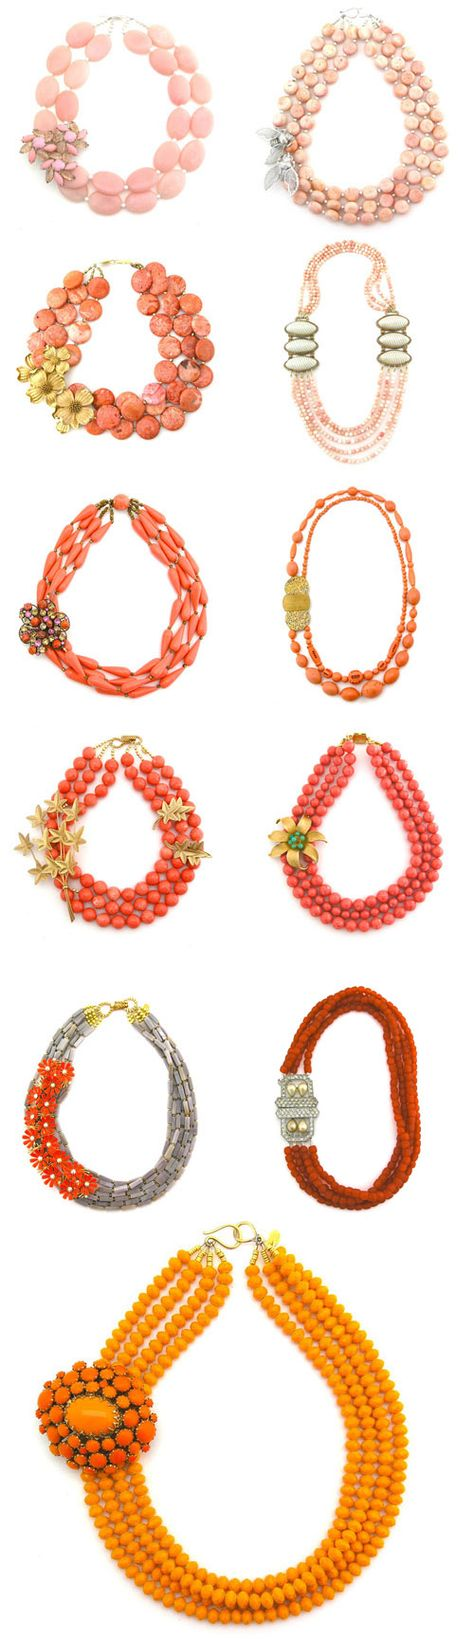 Coral, pink, peach and orange necklaces from the Elva Fields spring 2012 collection!